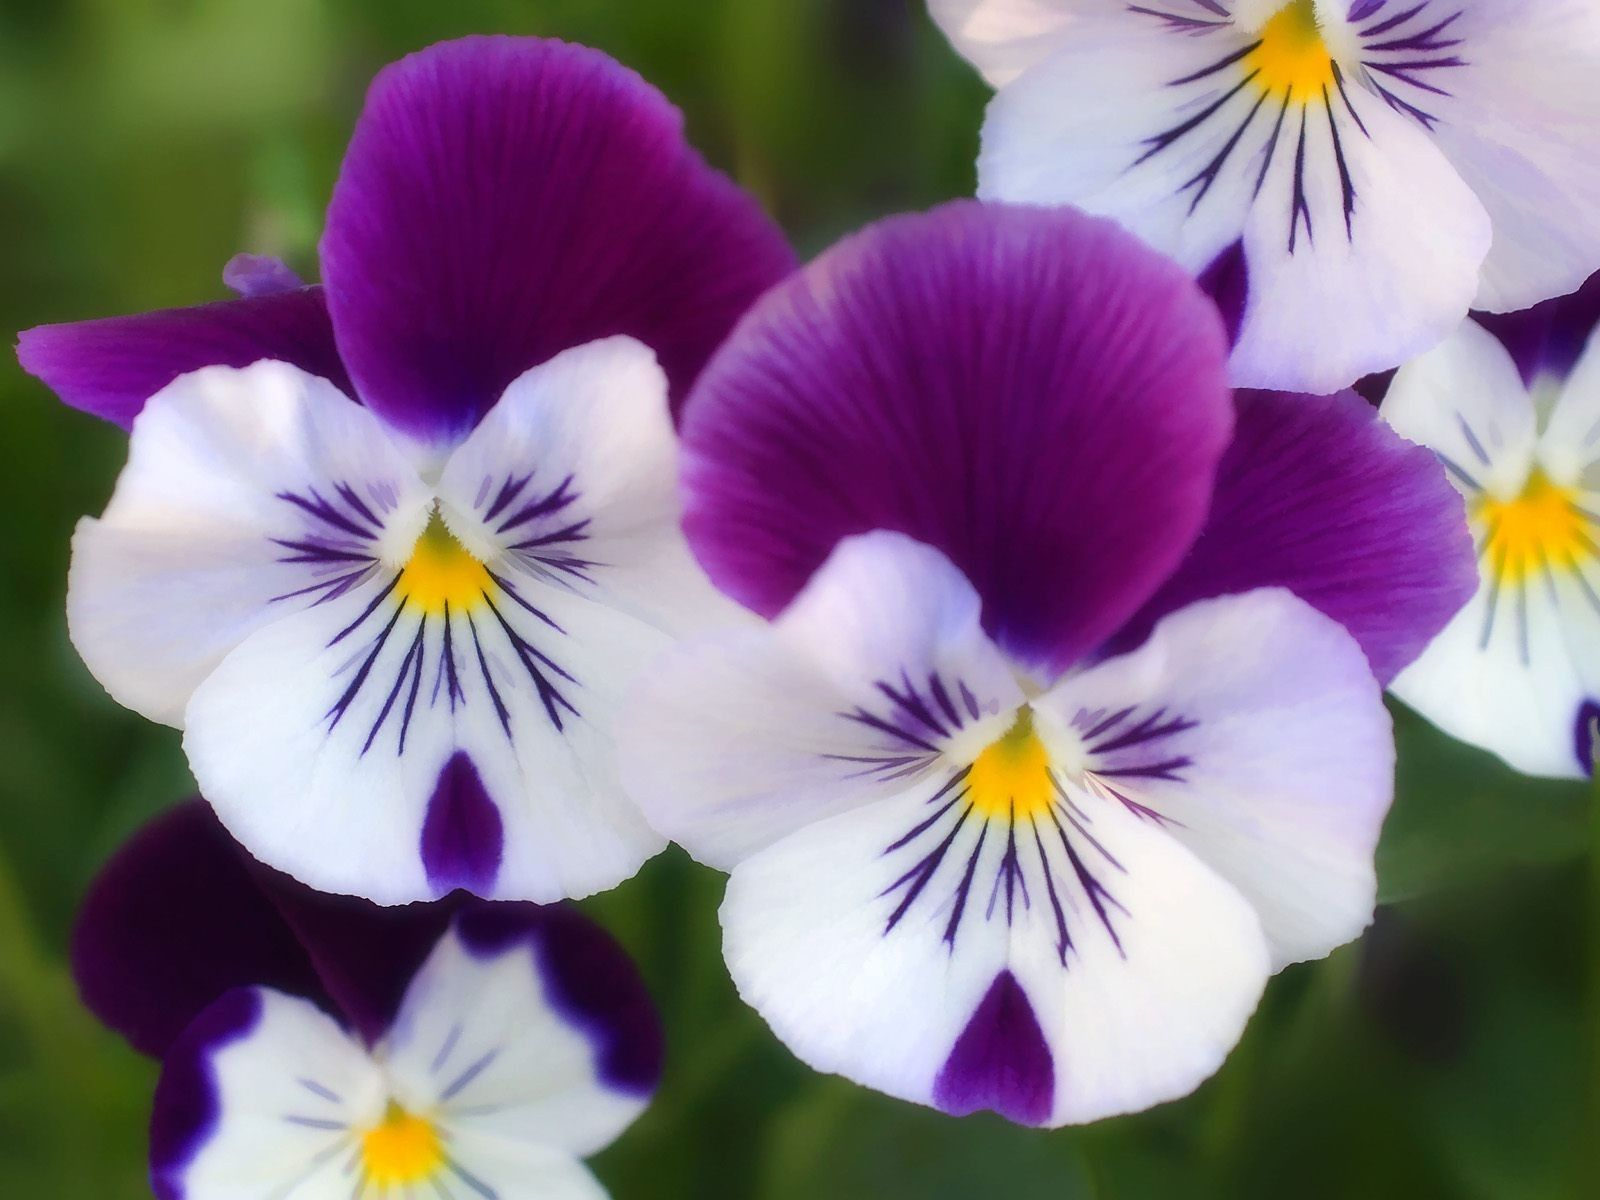 18 best different types of flowers images on pinterest nature most pretty white and purple flowers dhlflorist Images